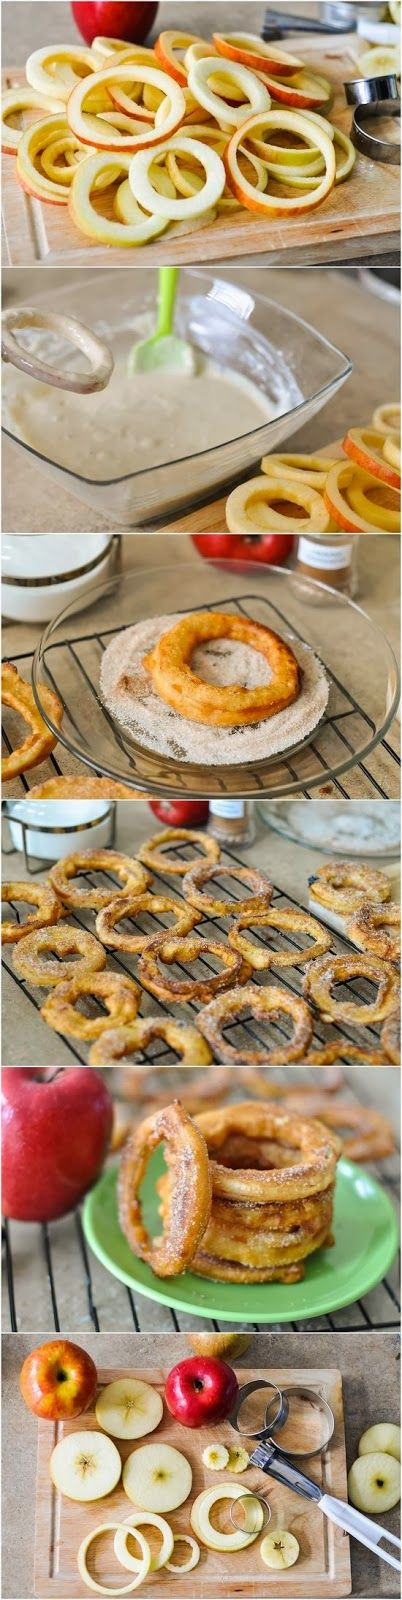 303Pixels: Apple Cinnamon Rings